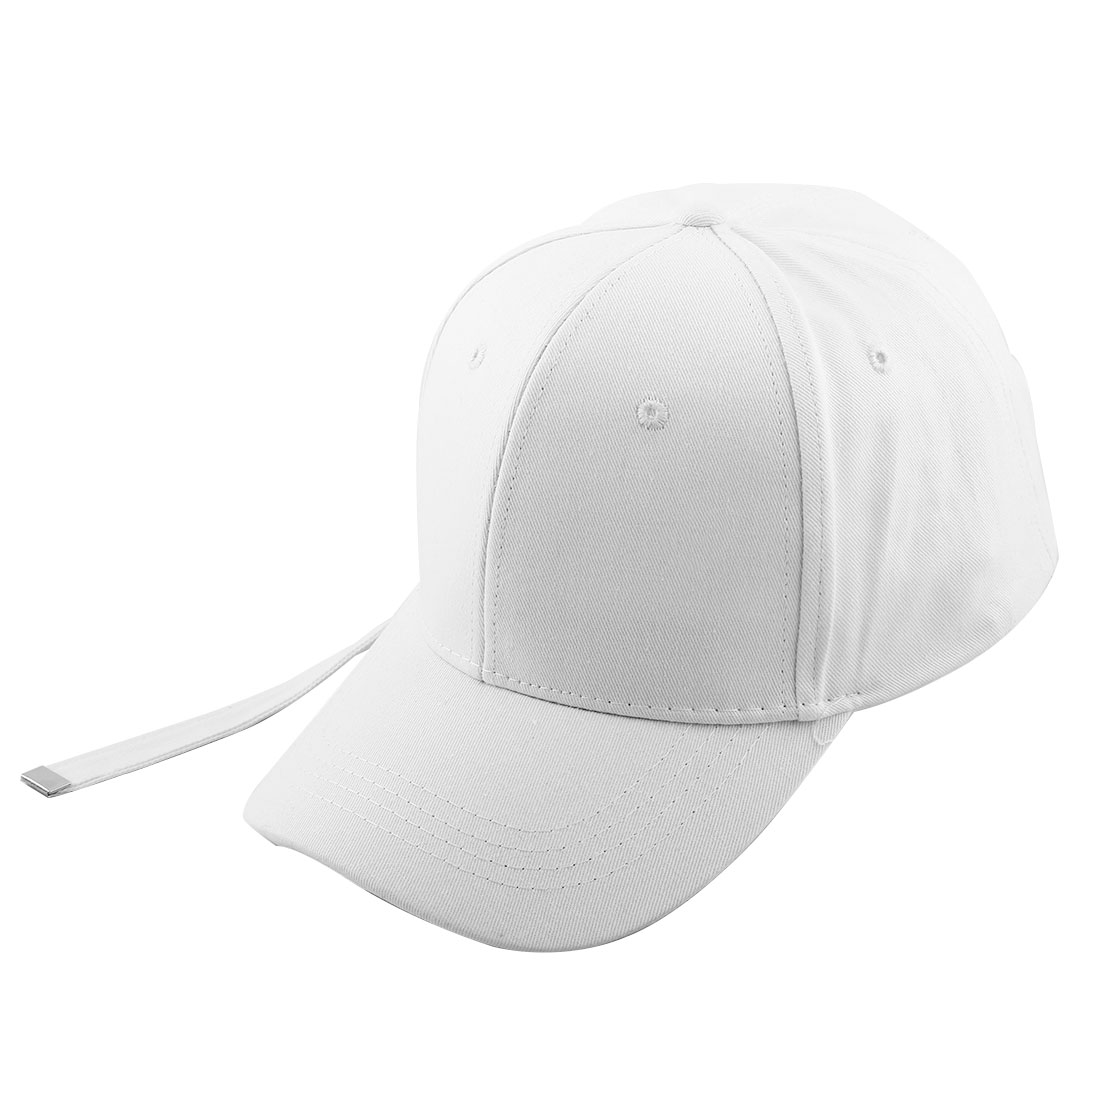 Spring Indoor Cotton Blends 6 Panel Adjustable Golf Baseball Cap Portable Snapback Hat White